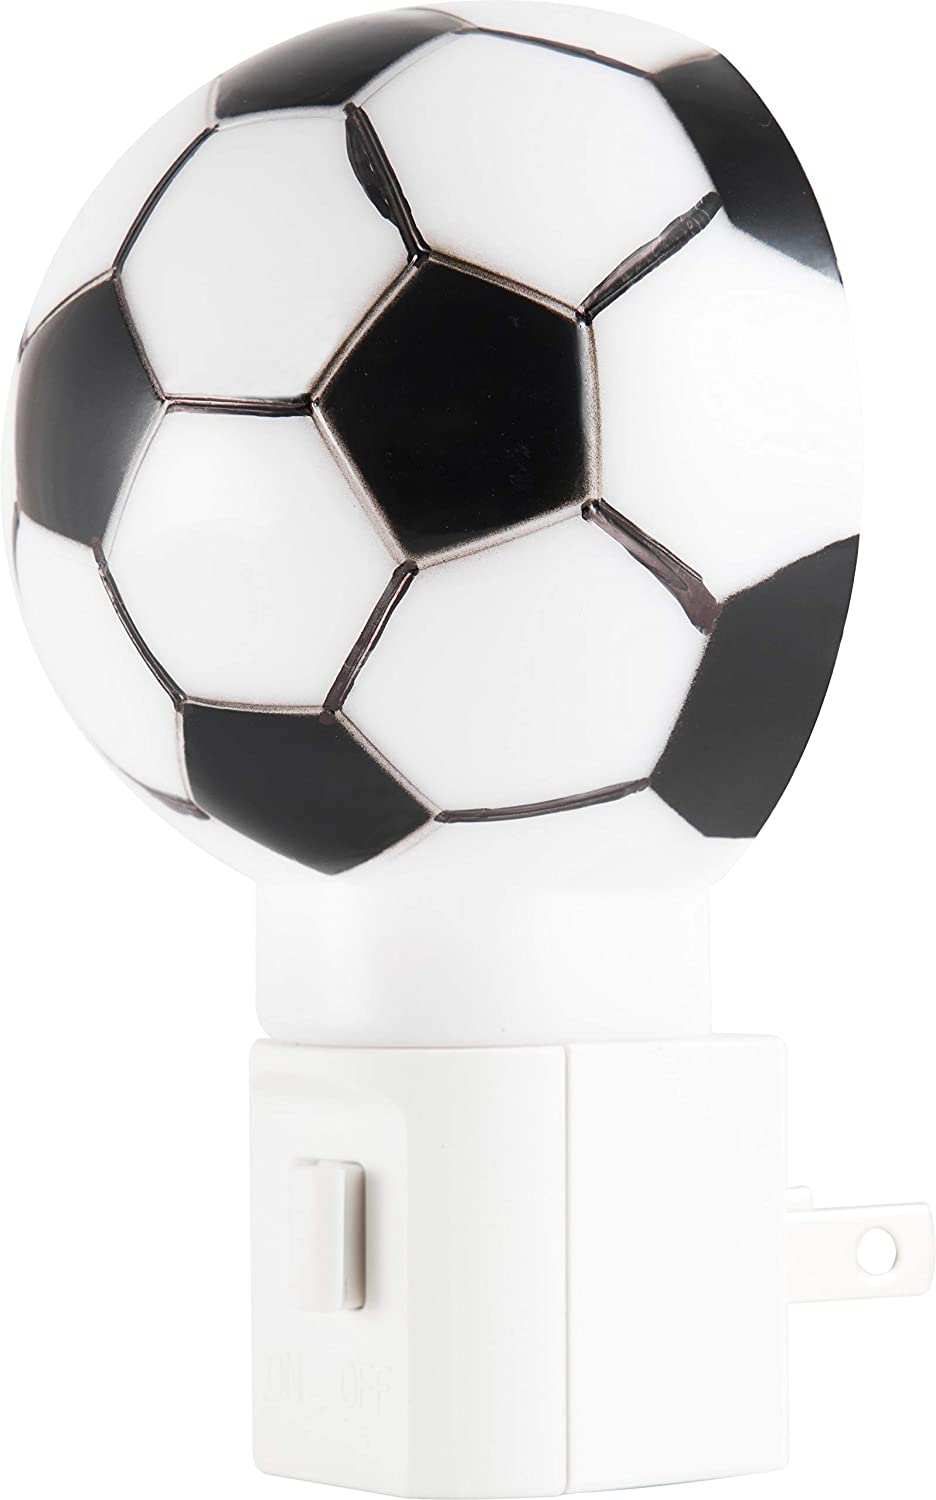 Lights by Night Plug-in LED Night Light, Soccer Ball, Fútbol, Energy Efficient, Manual On/Off, Sports Décor, Ideal for Living, Bedroom, Kid's Room, Nursery, Hallway, Bathroom, 44937, Black and White